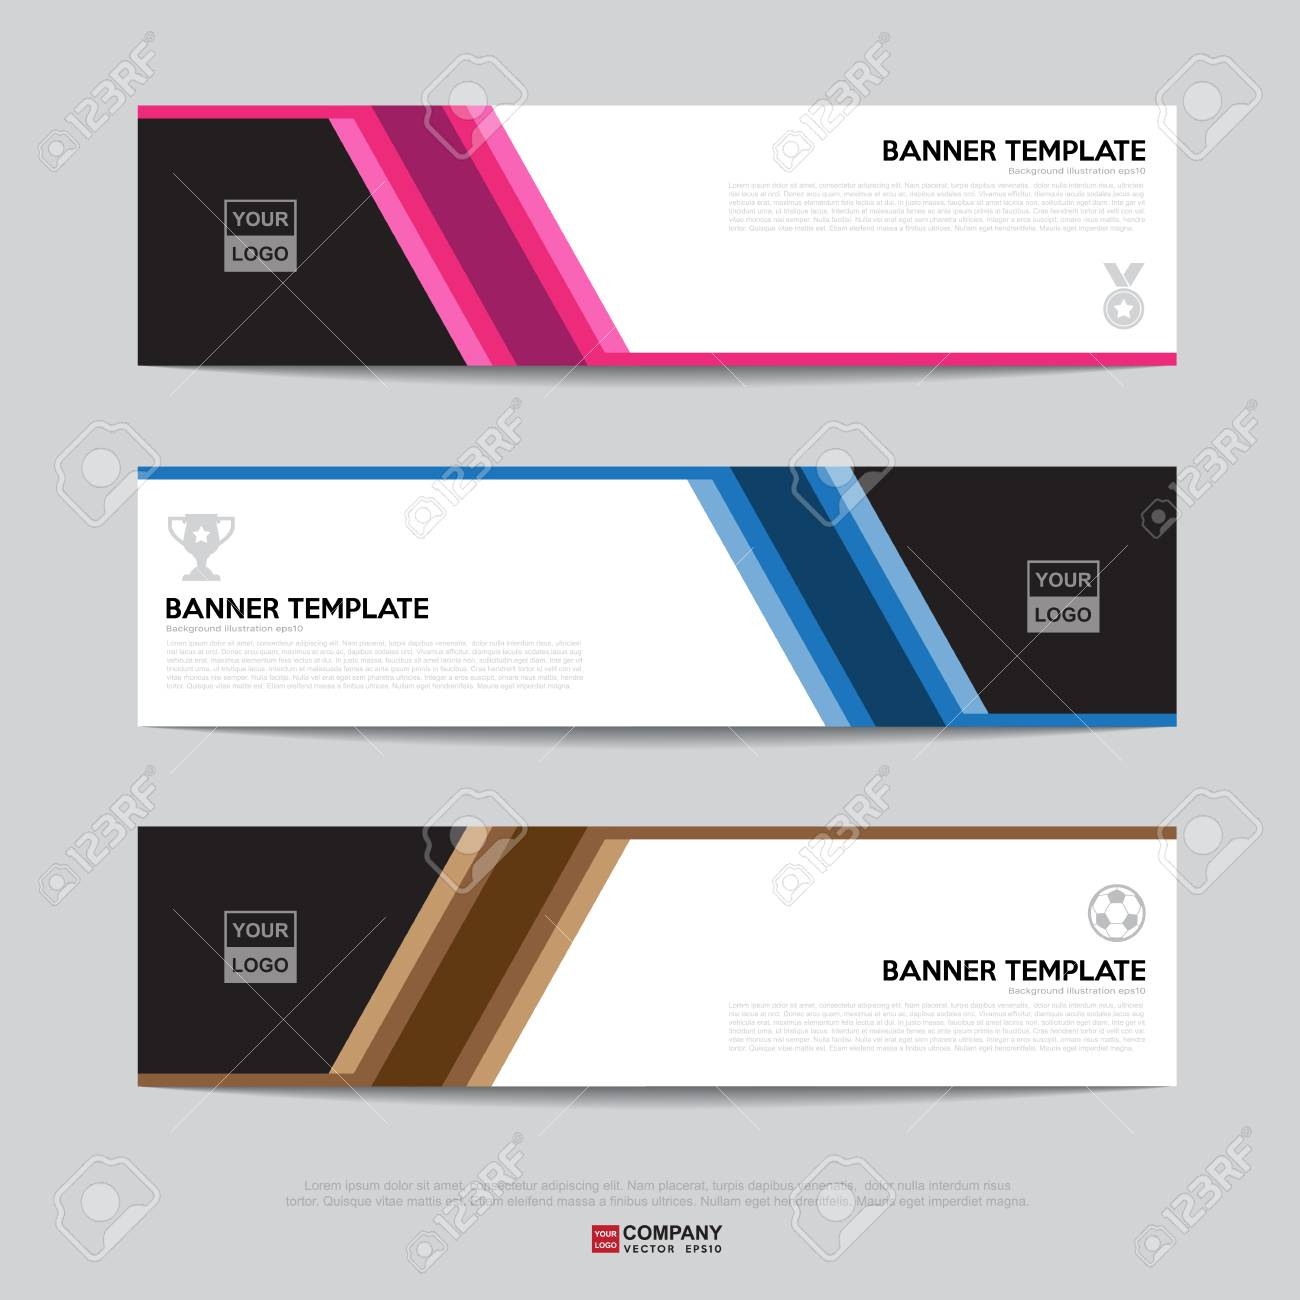 Design of flyers banners brochures and cards templatebanner design of flyers banners brochures and cards templatebanner design for business presentation cheaphphosting Image collections